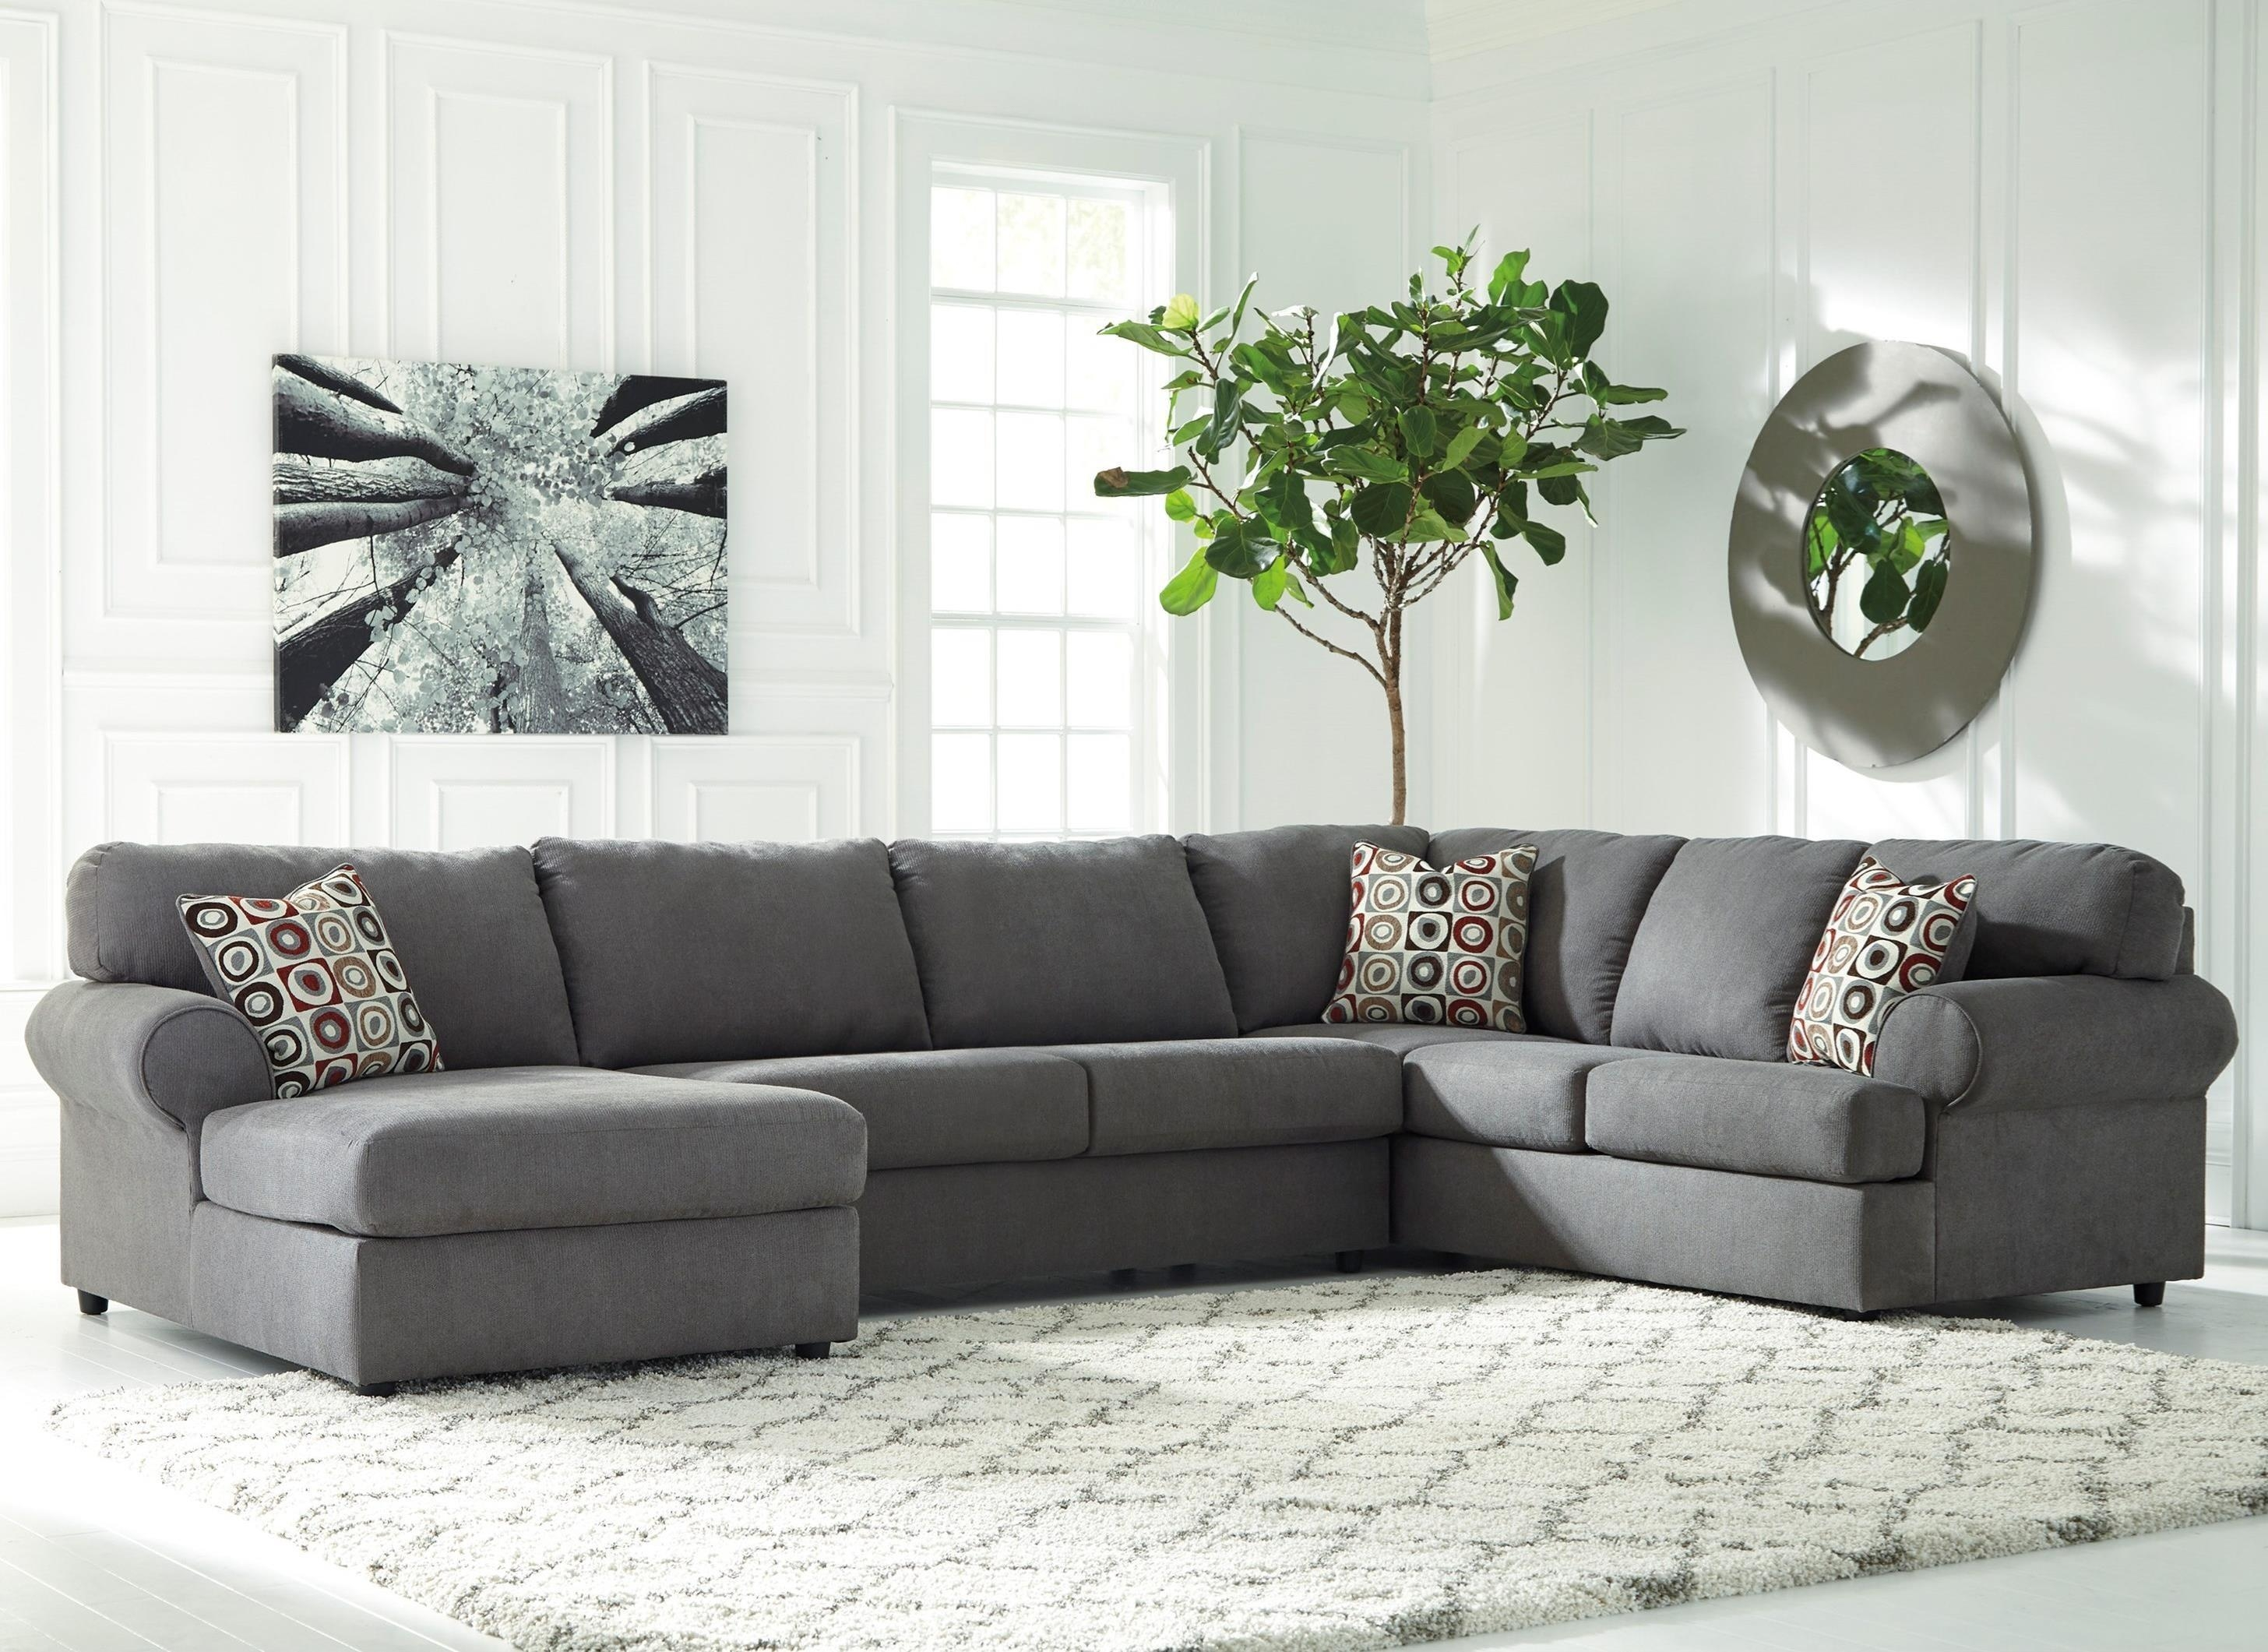 Signature Designashley Jayceon 3 Piece Sectional With Left Within Sectional With 2 Chaises (Image 14 of 20)